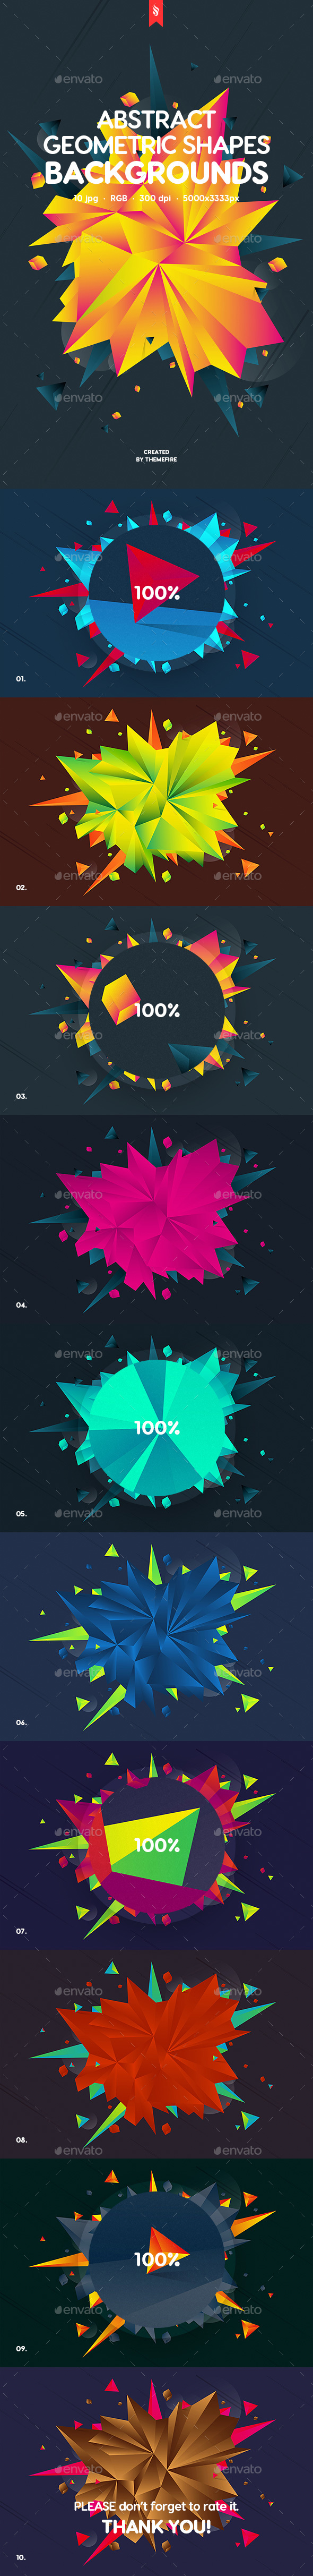 Abstract Geometric Shapes Backgrounds - Abstract Backgrounds